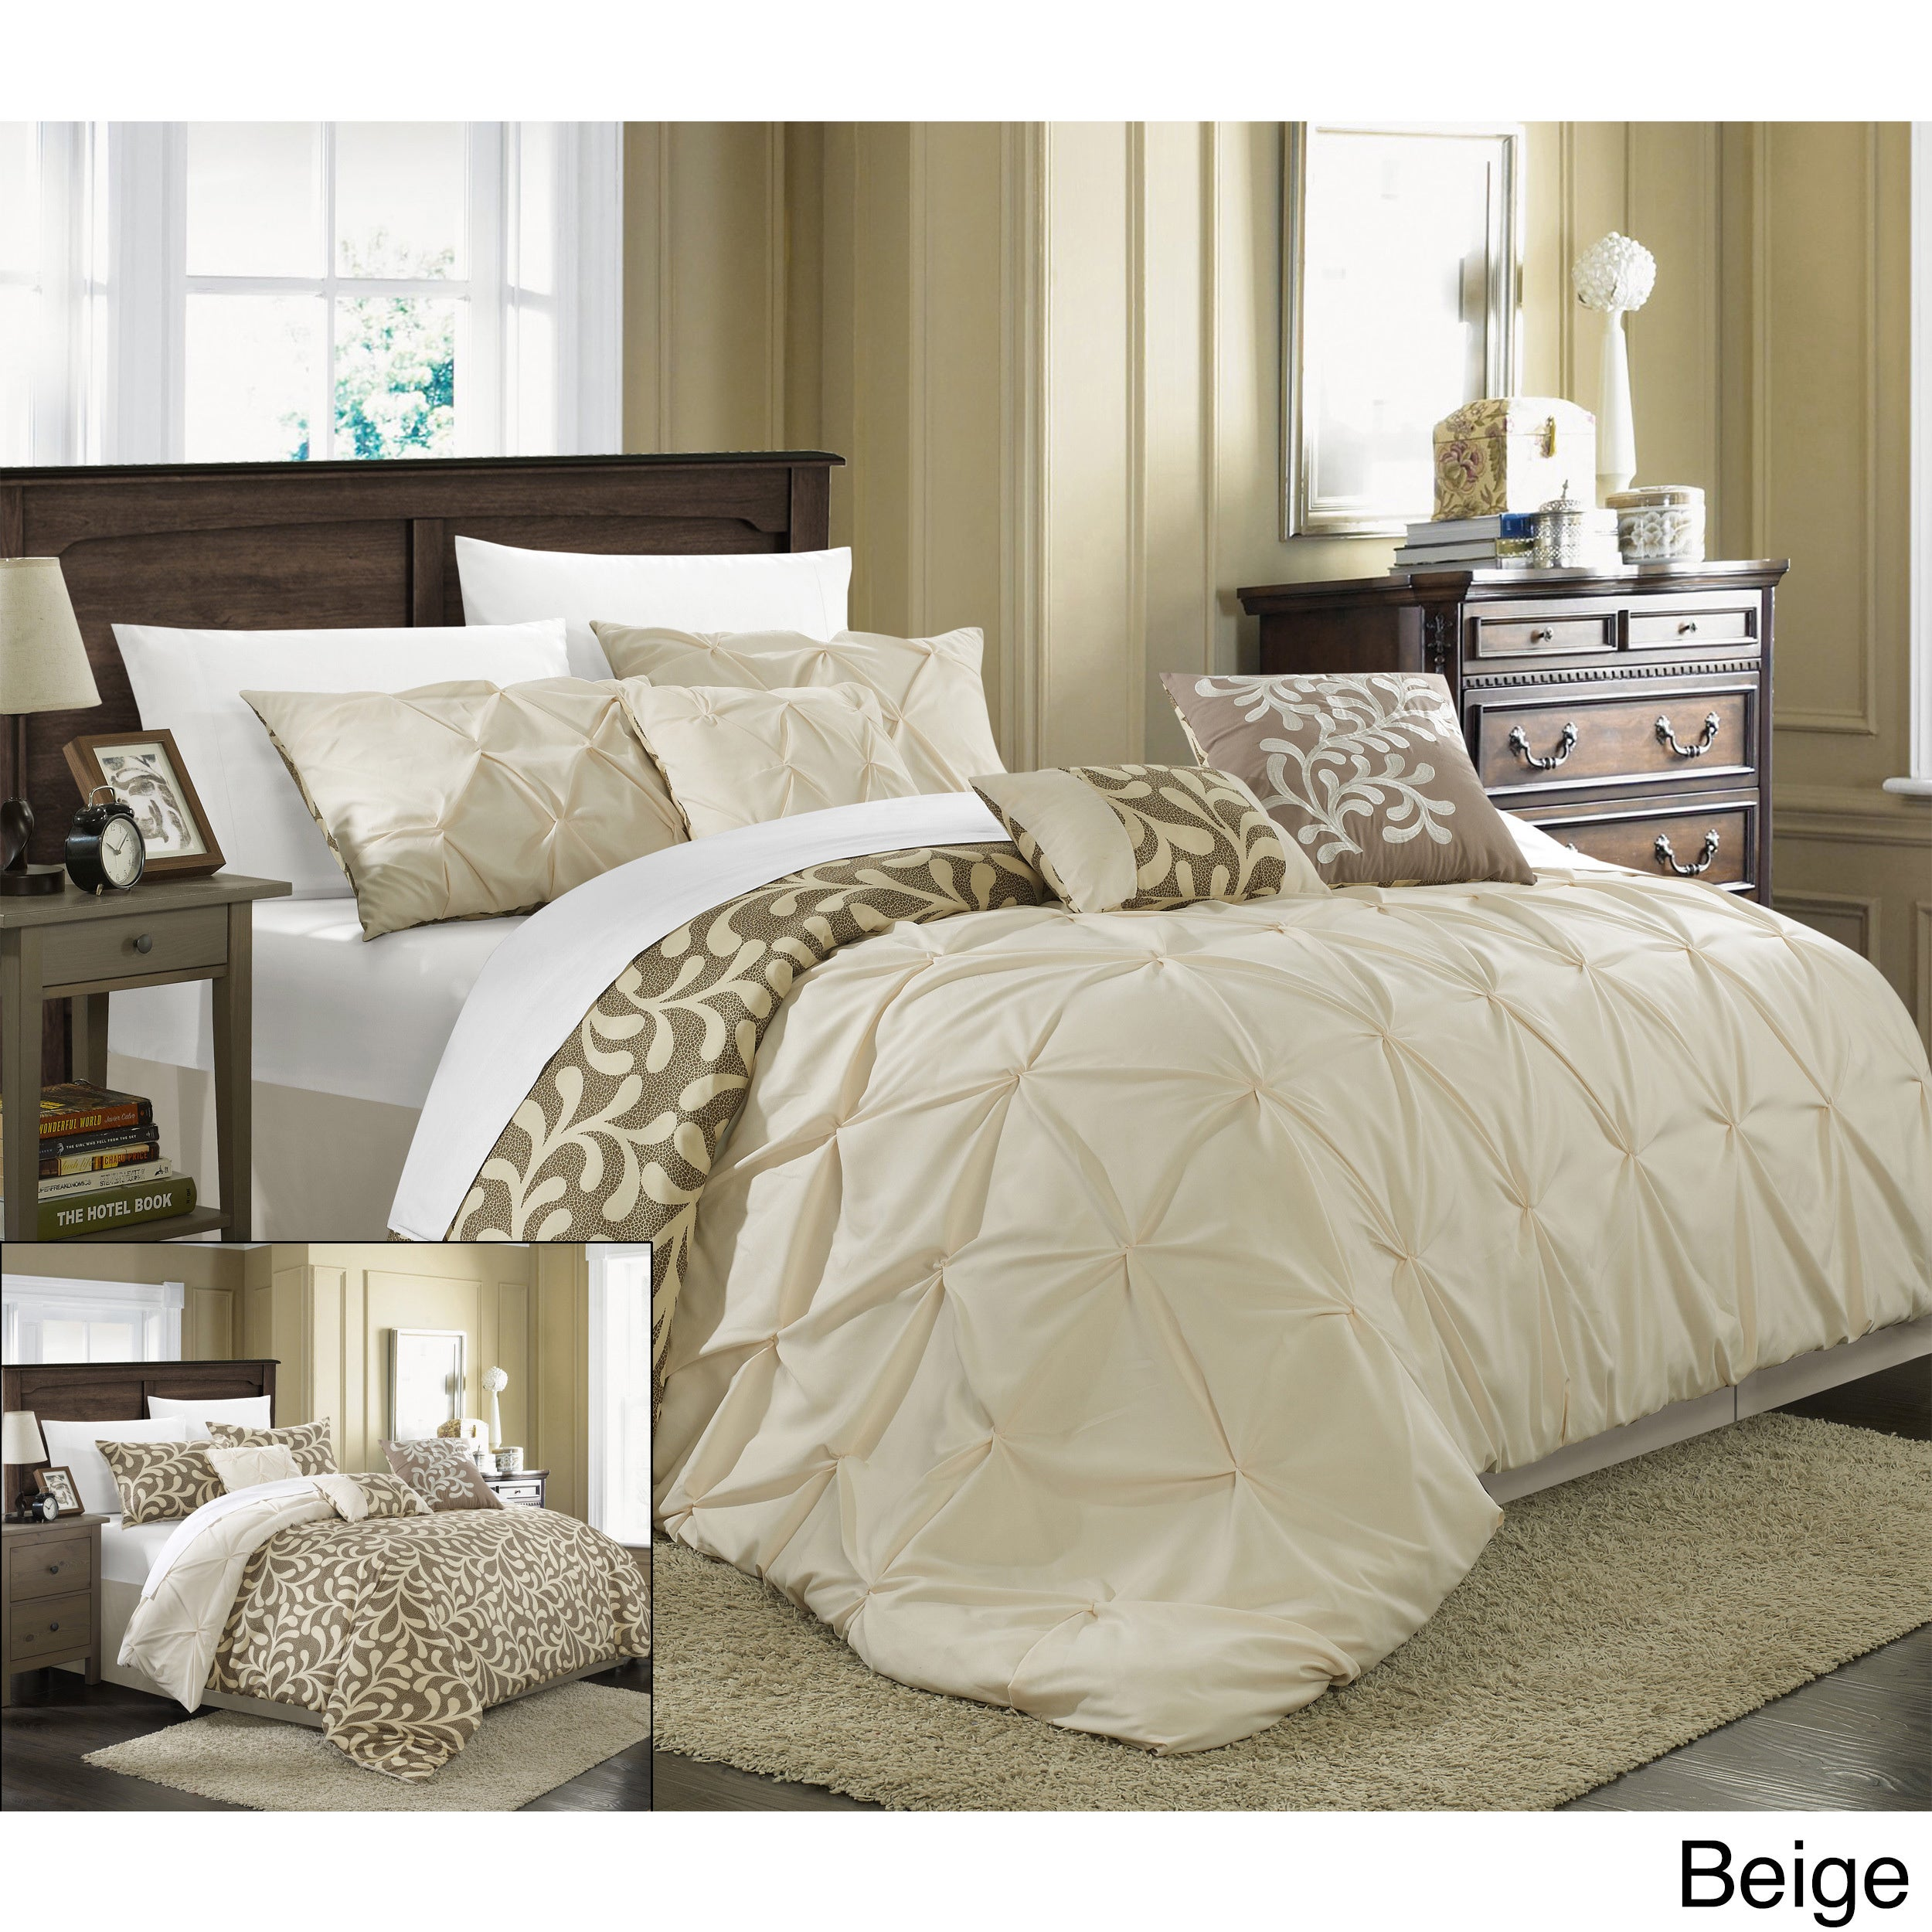 sets breathtaking bedding pictures size concept hotel york setscomforter king wayfair new full kohls comforter comfort blue of